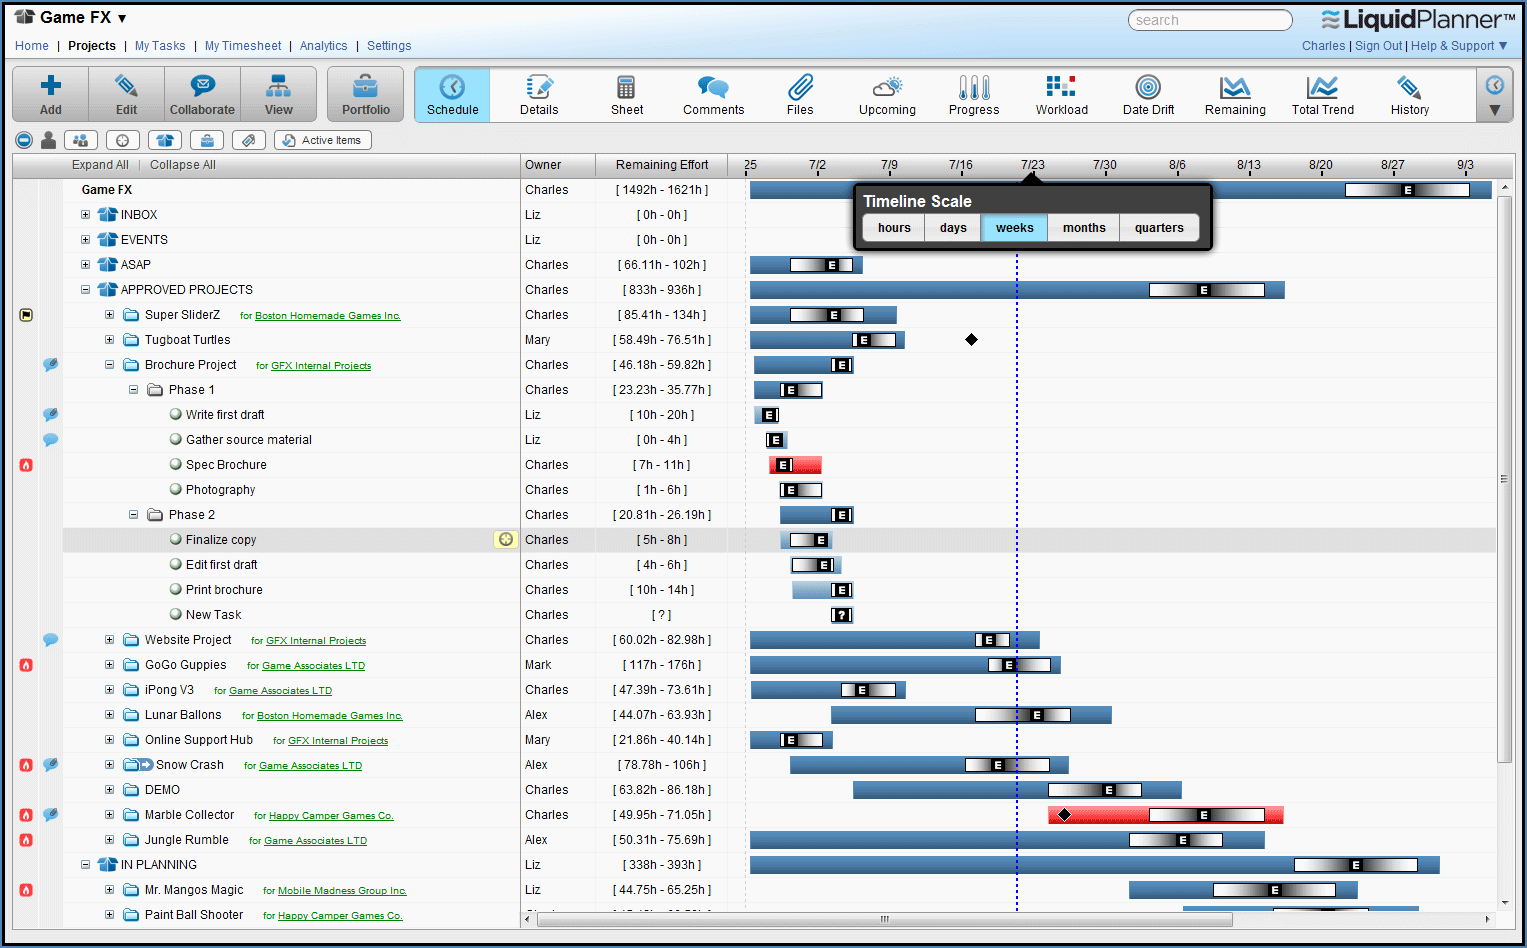 File:LiquidPlanner-project-management-schedule.png - Wikipedia